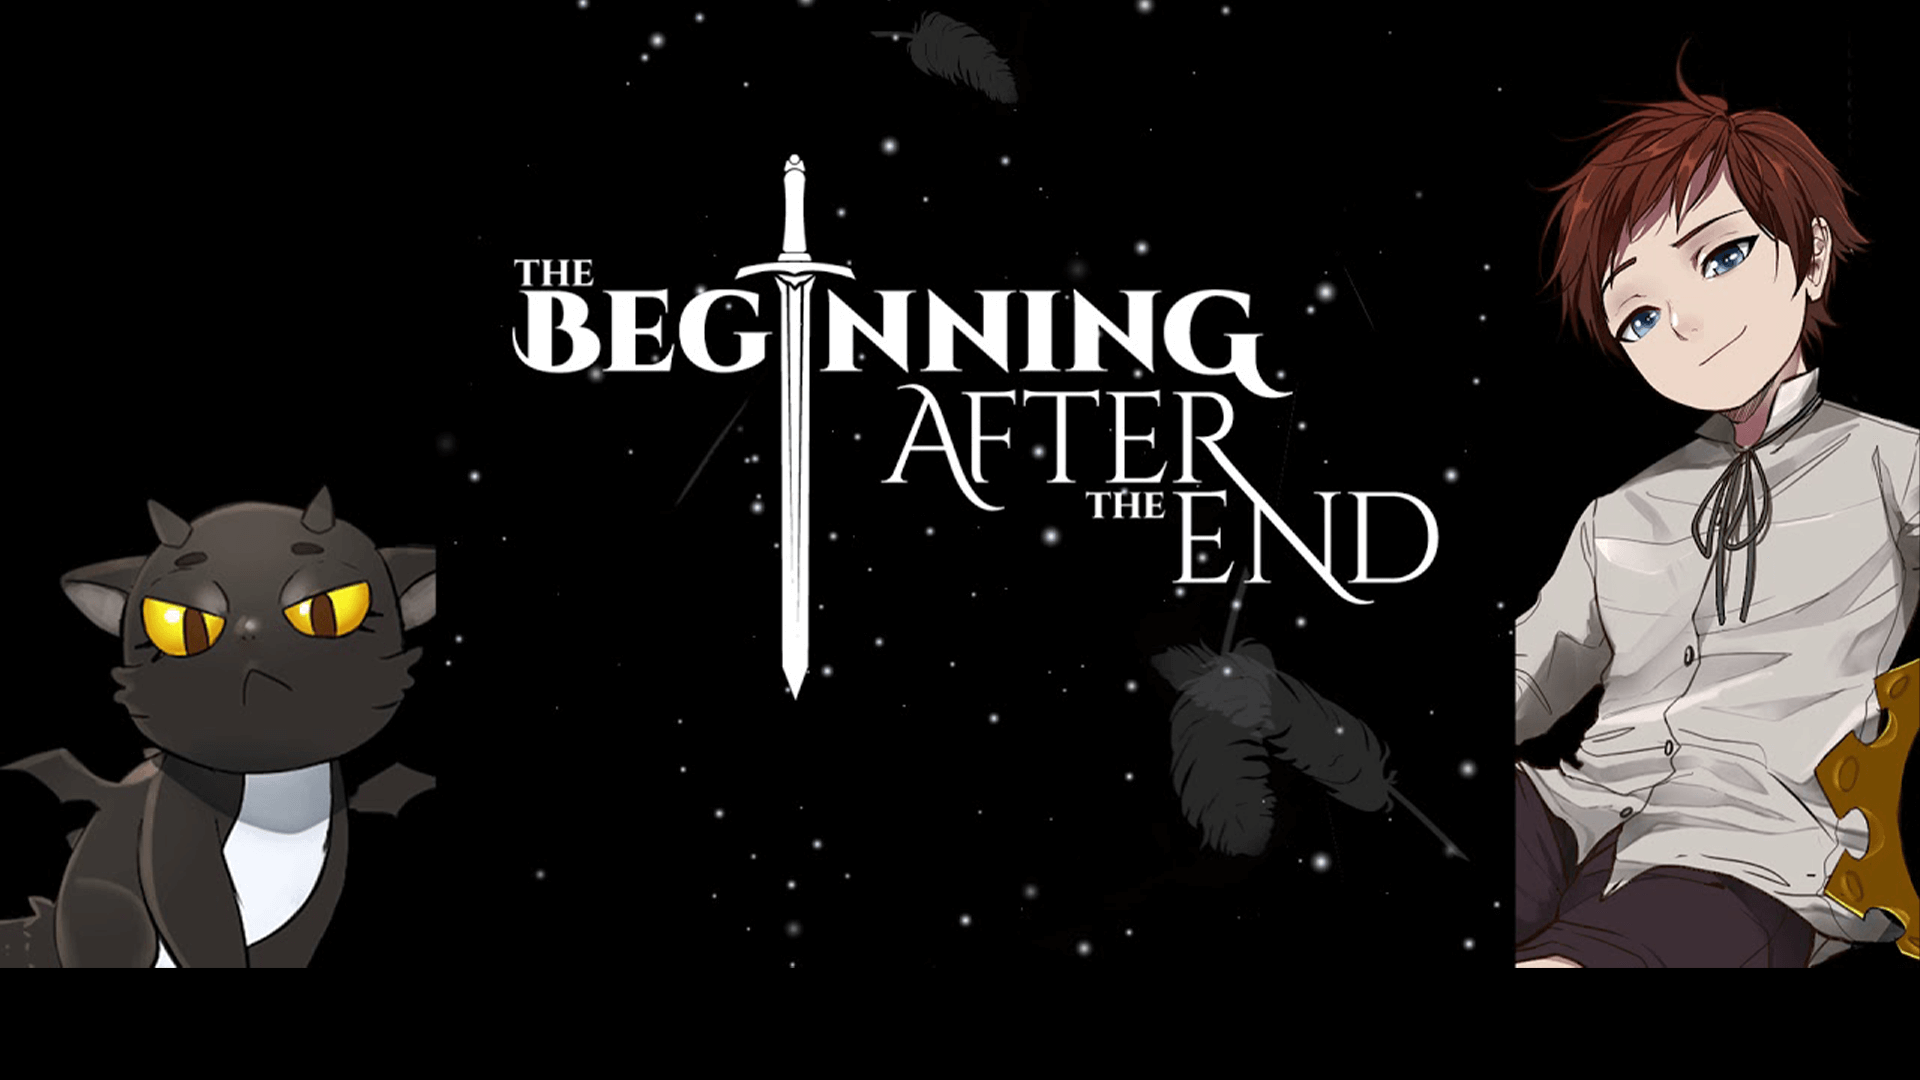 The Beginning After The End Phone Wallpaper This is the list of the beginning after the end novel's volumes and chapters, written by turtleme. the beginning after the end phone wallpaper